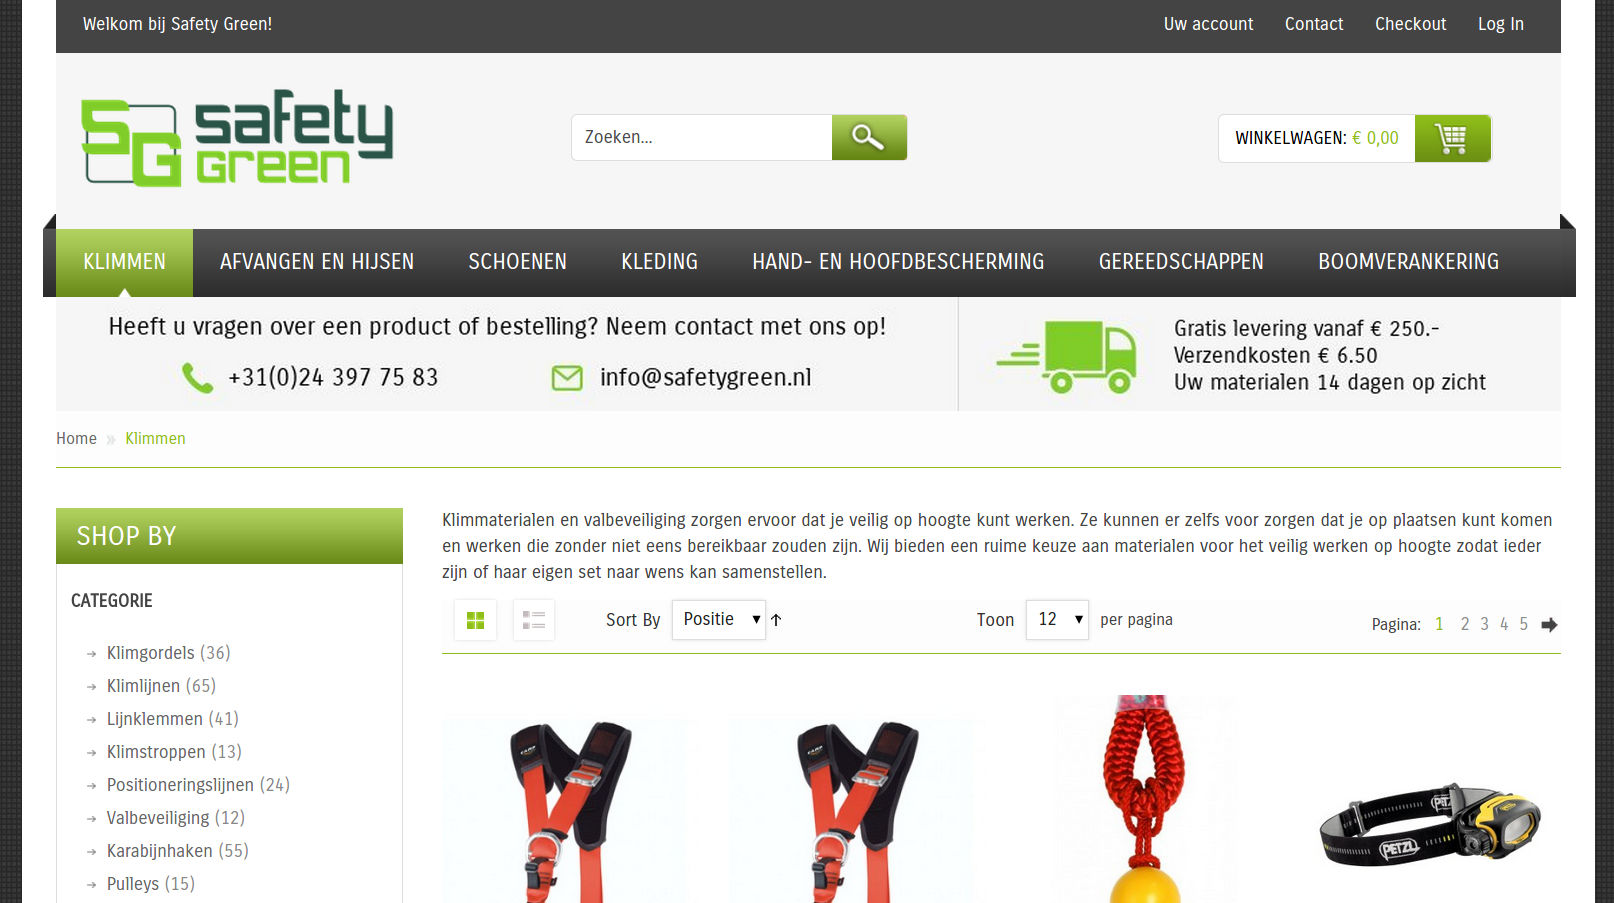 safetygreen.nl website